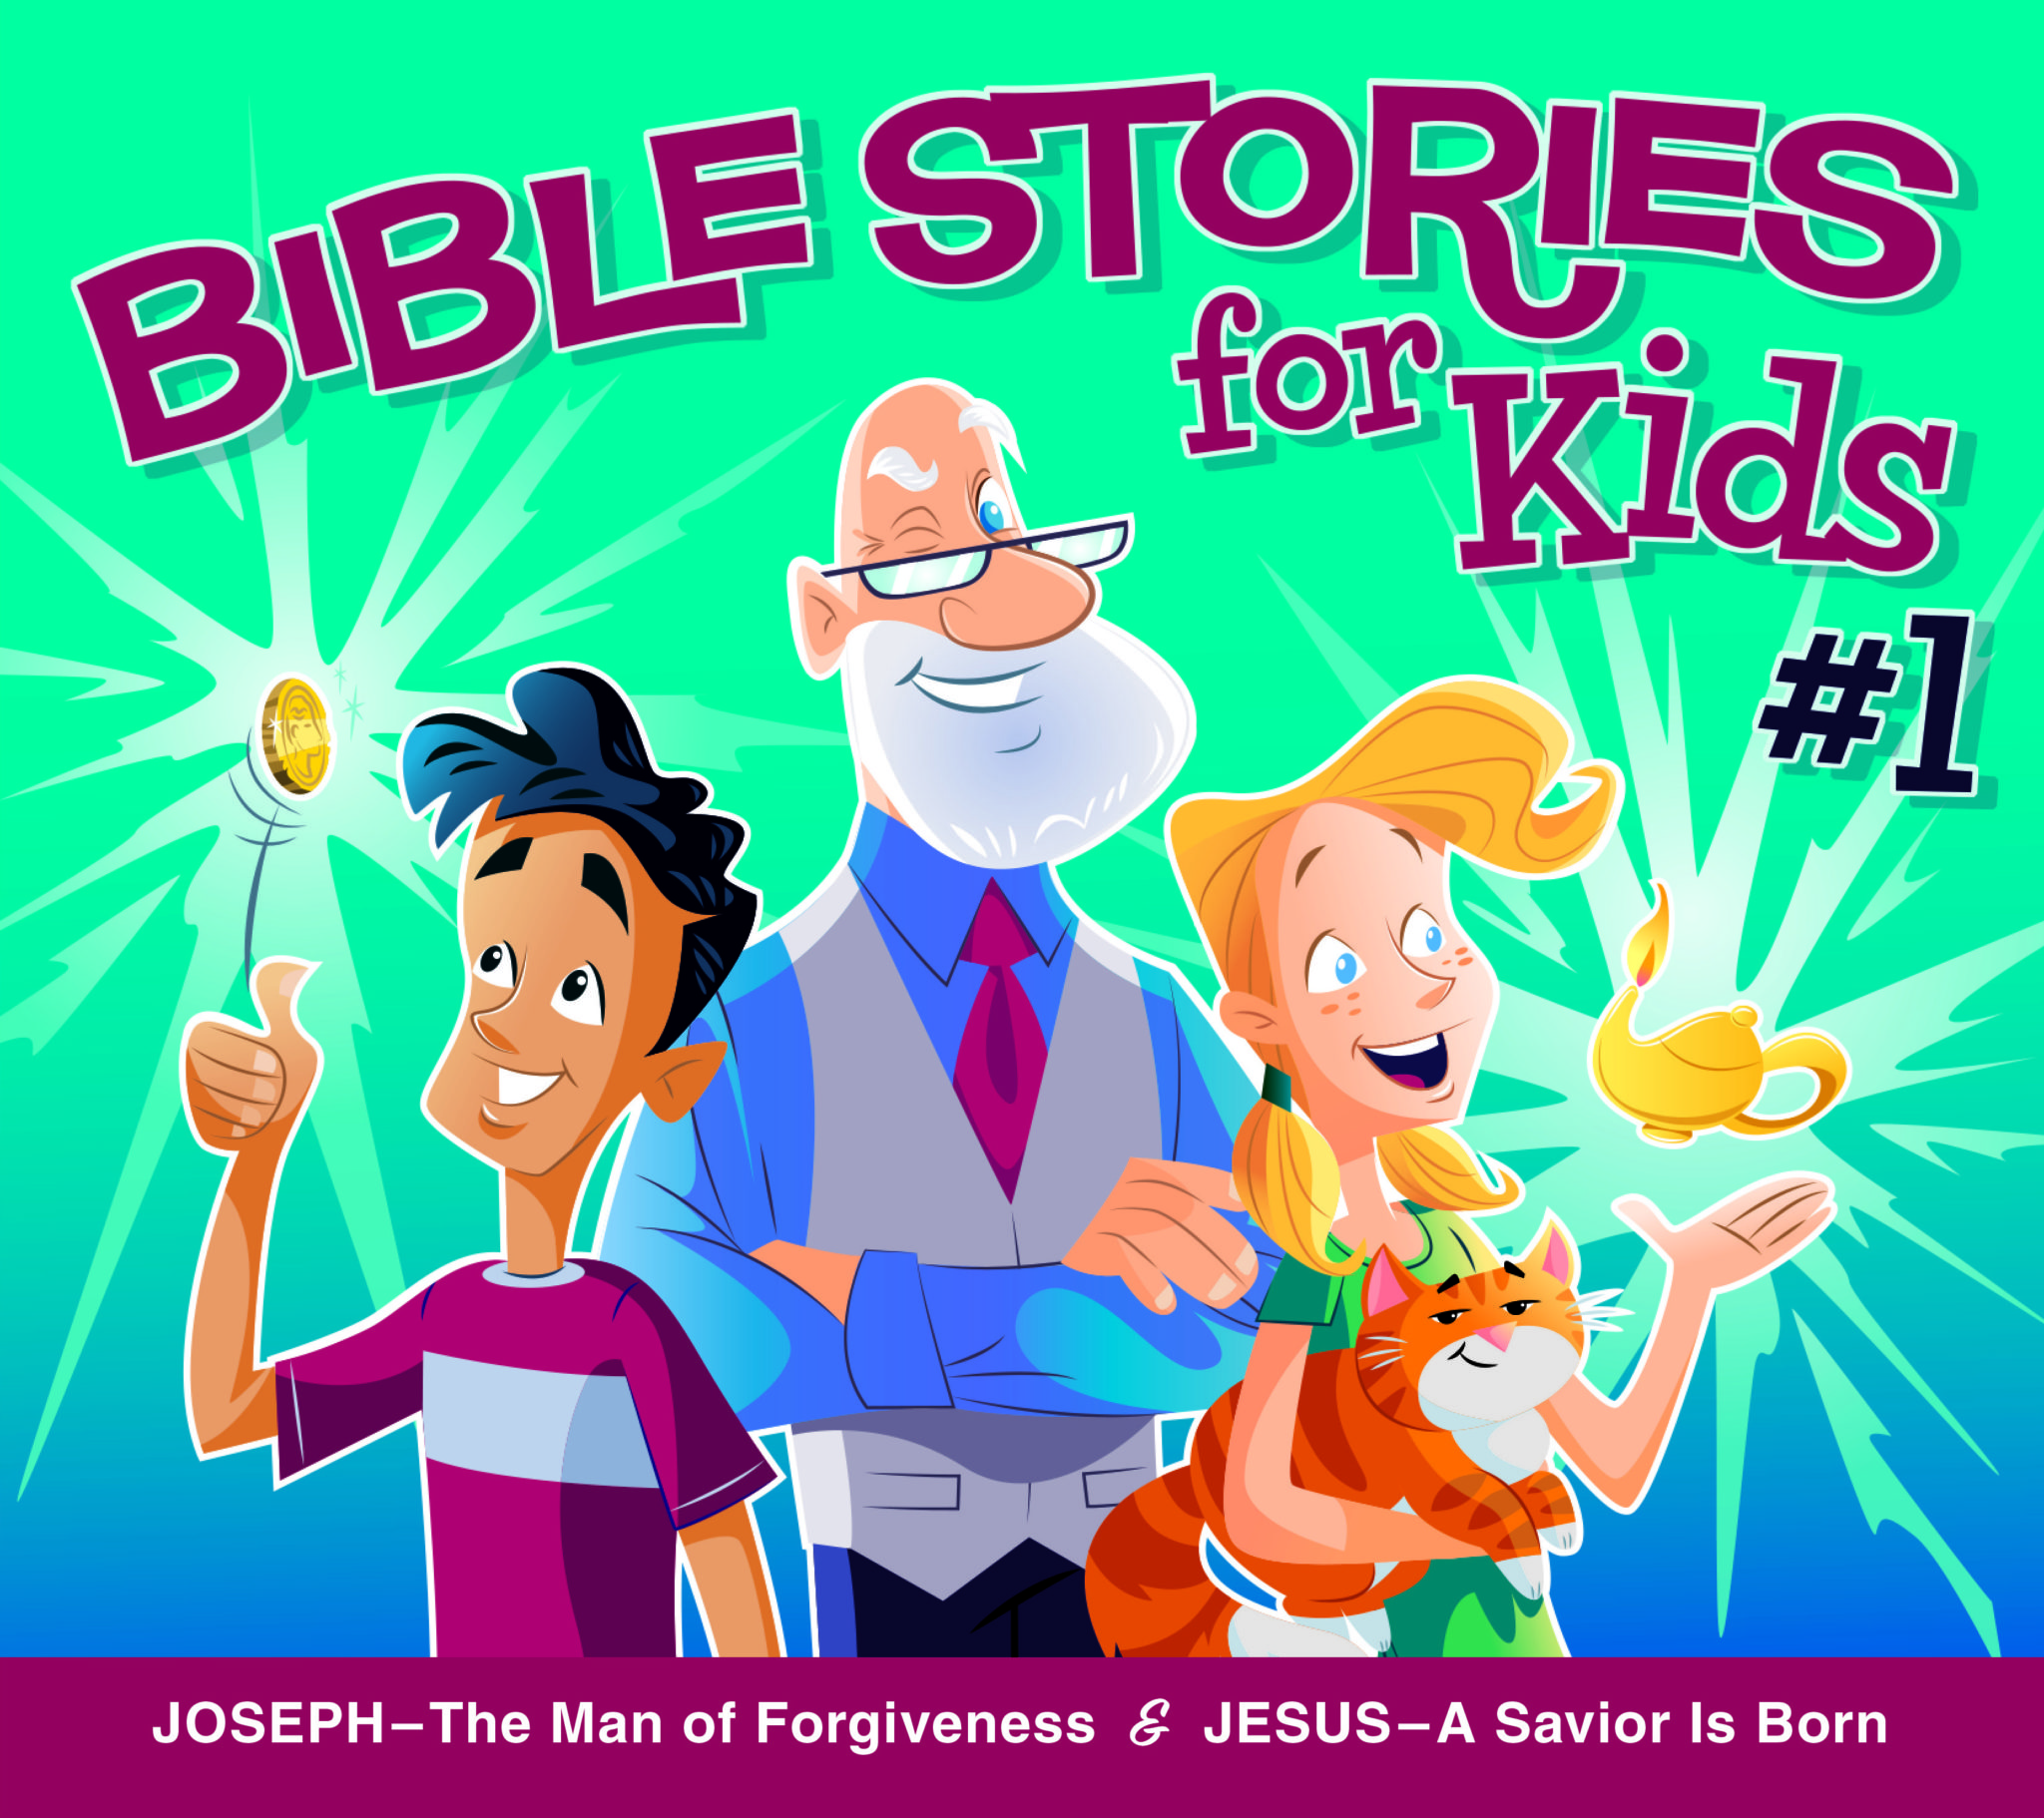 Bible STORIES for Kids #1 Listening CD.